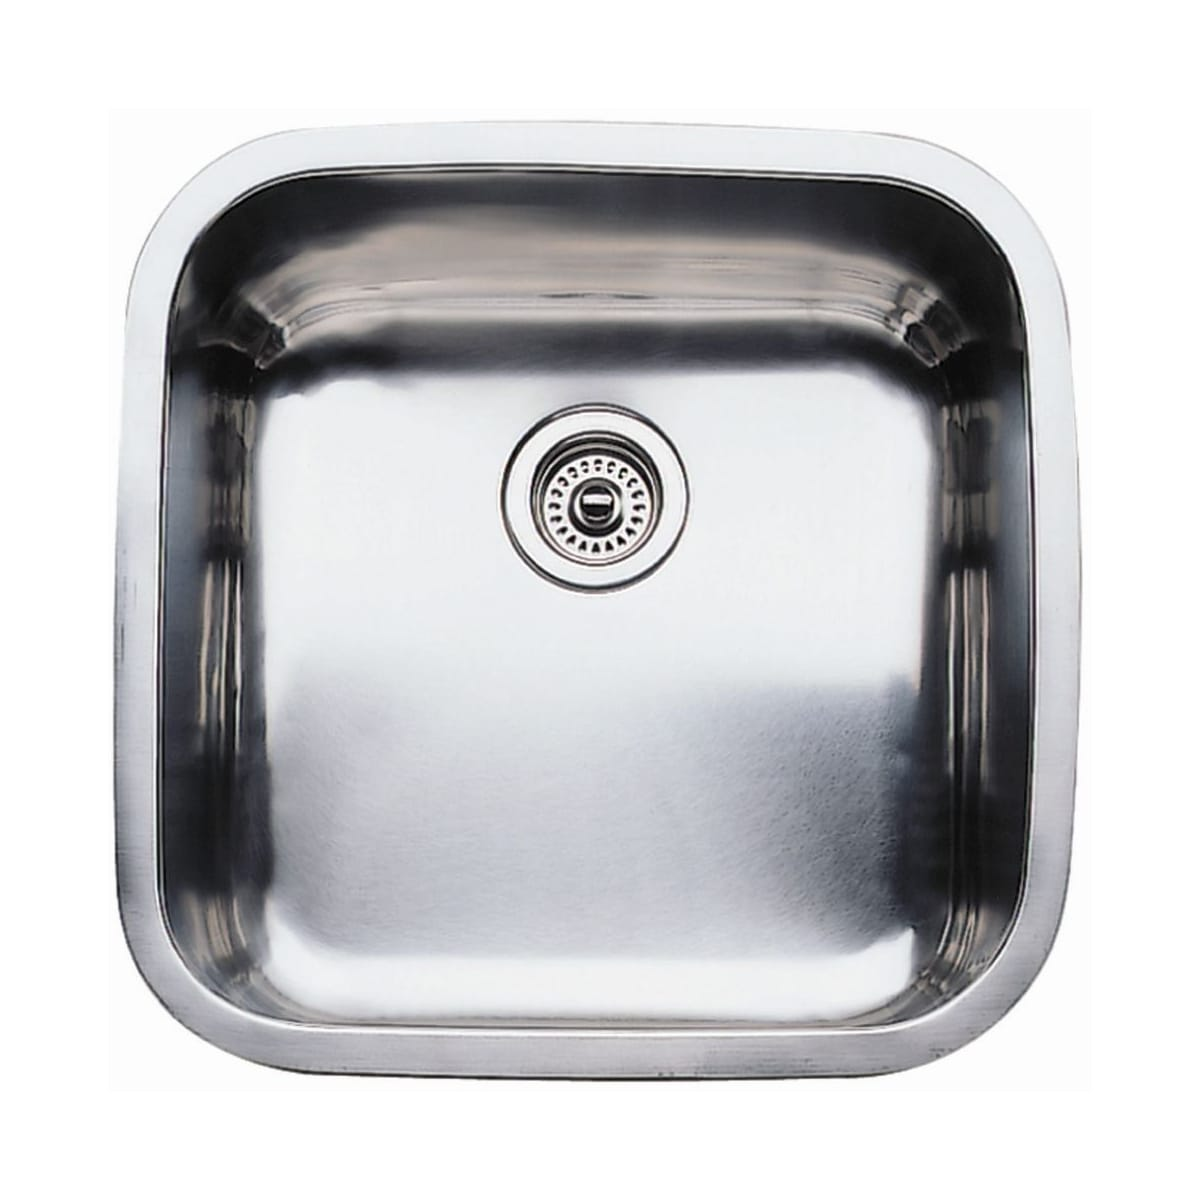 "Blanco Supreme Single Basin Stainless Steel Kitchen Sink 20-1/2"" x 2-1/2"""